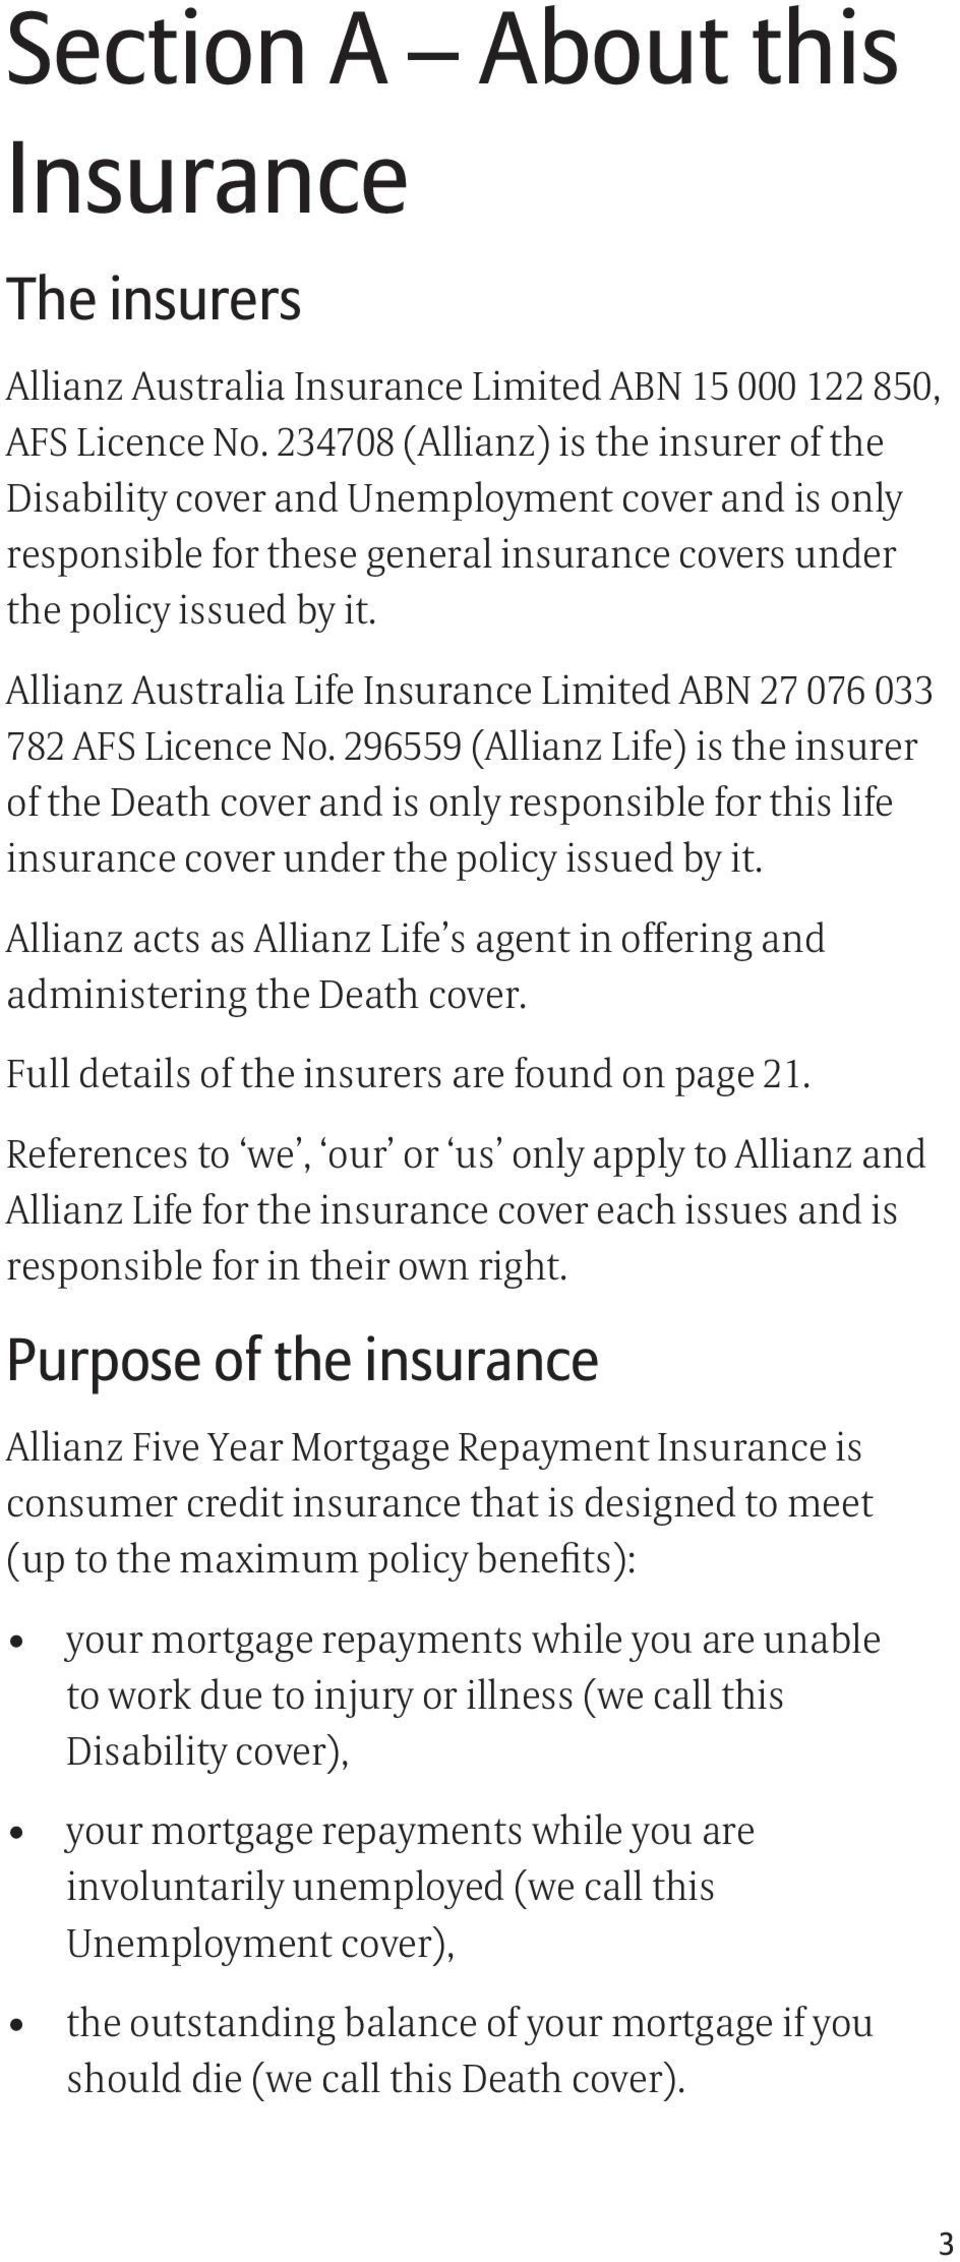 Allianz Australia Life Insurance Limited ABN 27 076 033 782 AFS Licence No.